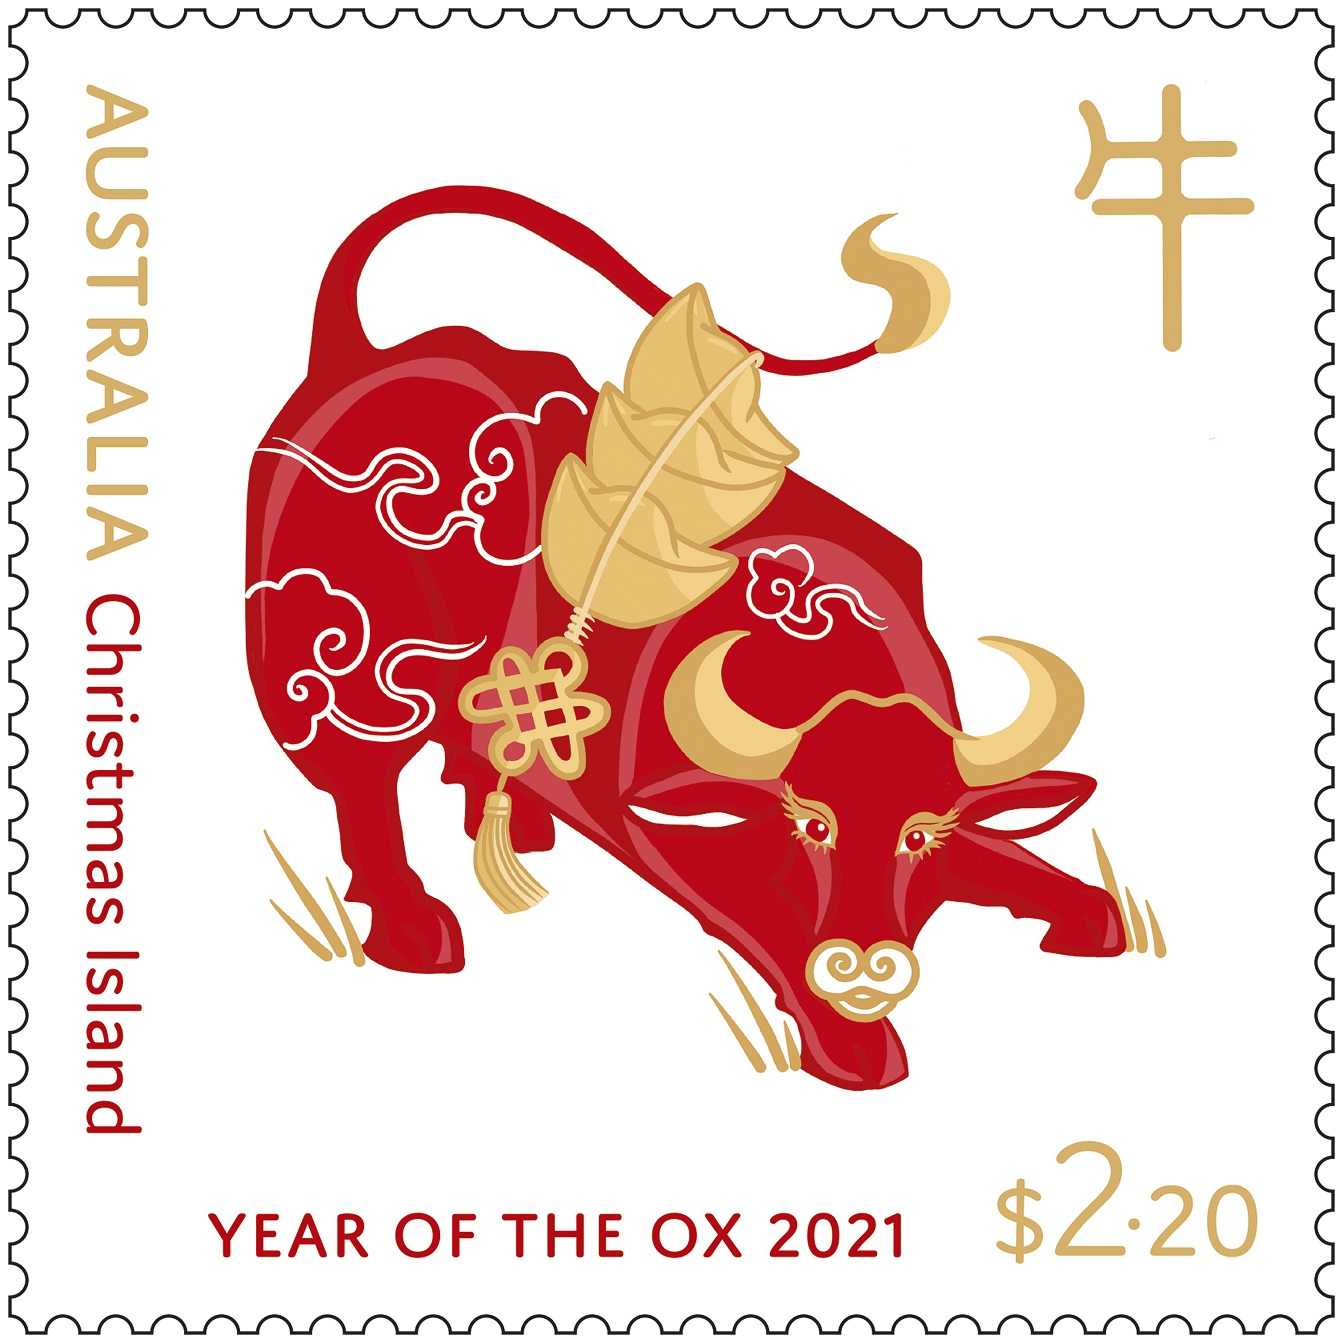 Year of the Ox 2